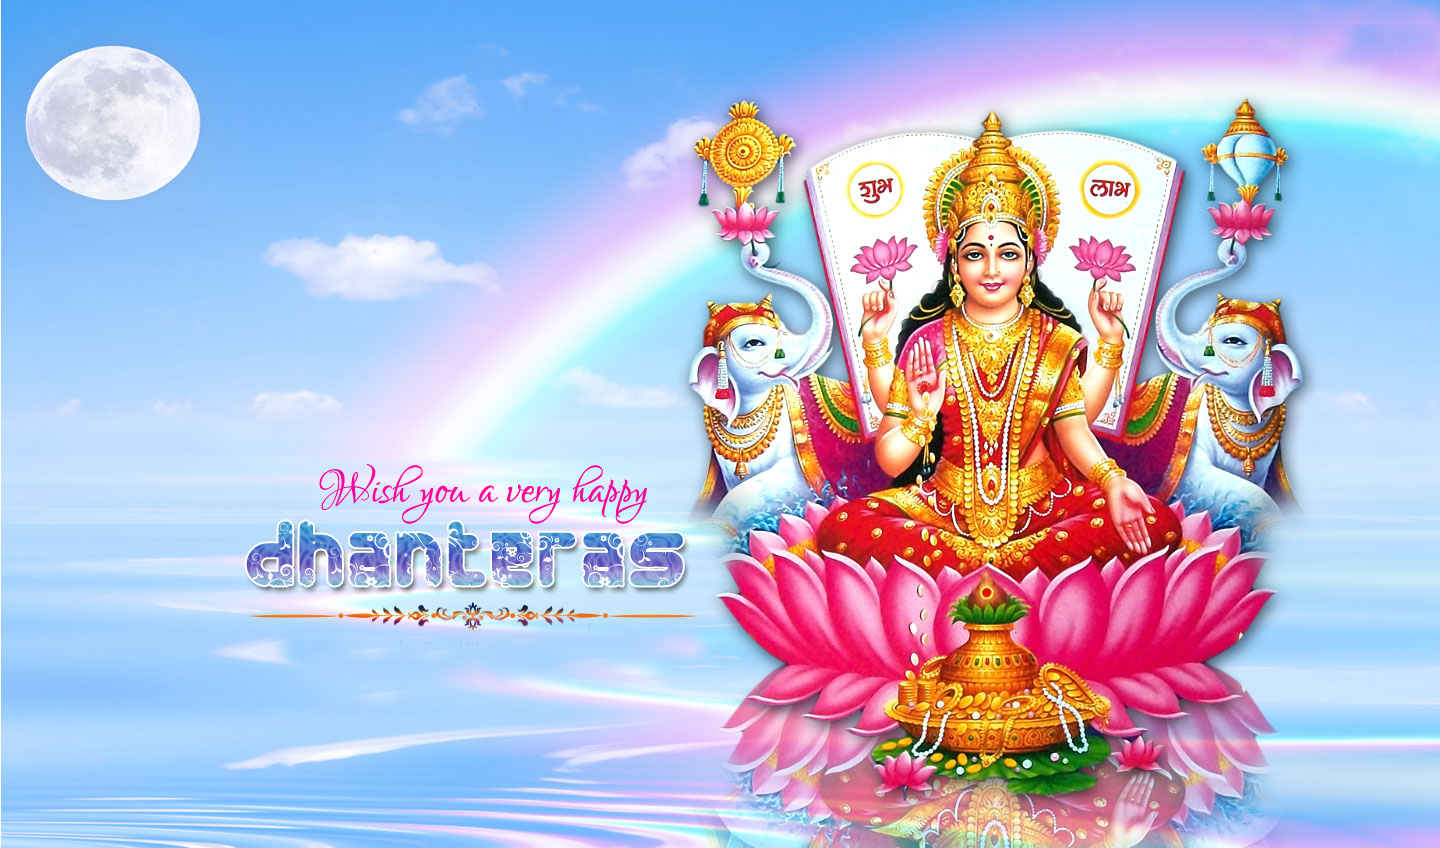 Happy Dhanteras 2018 Images For Facebook